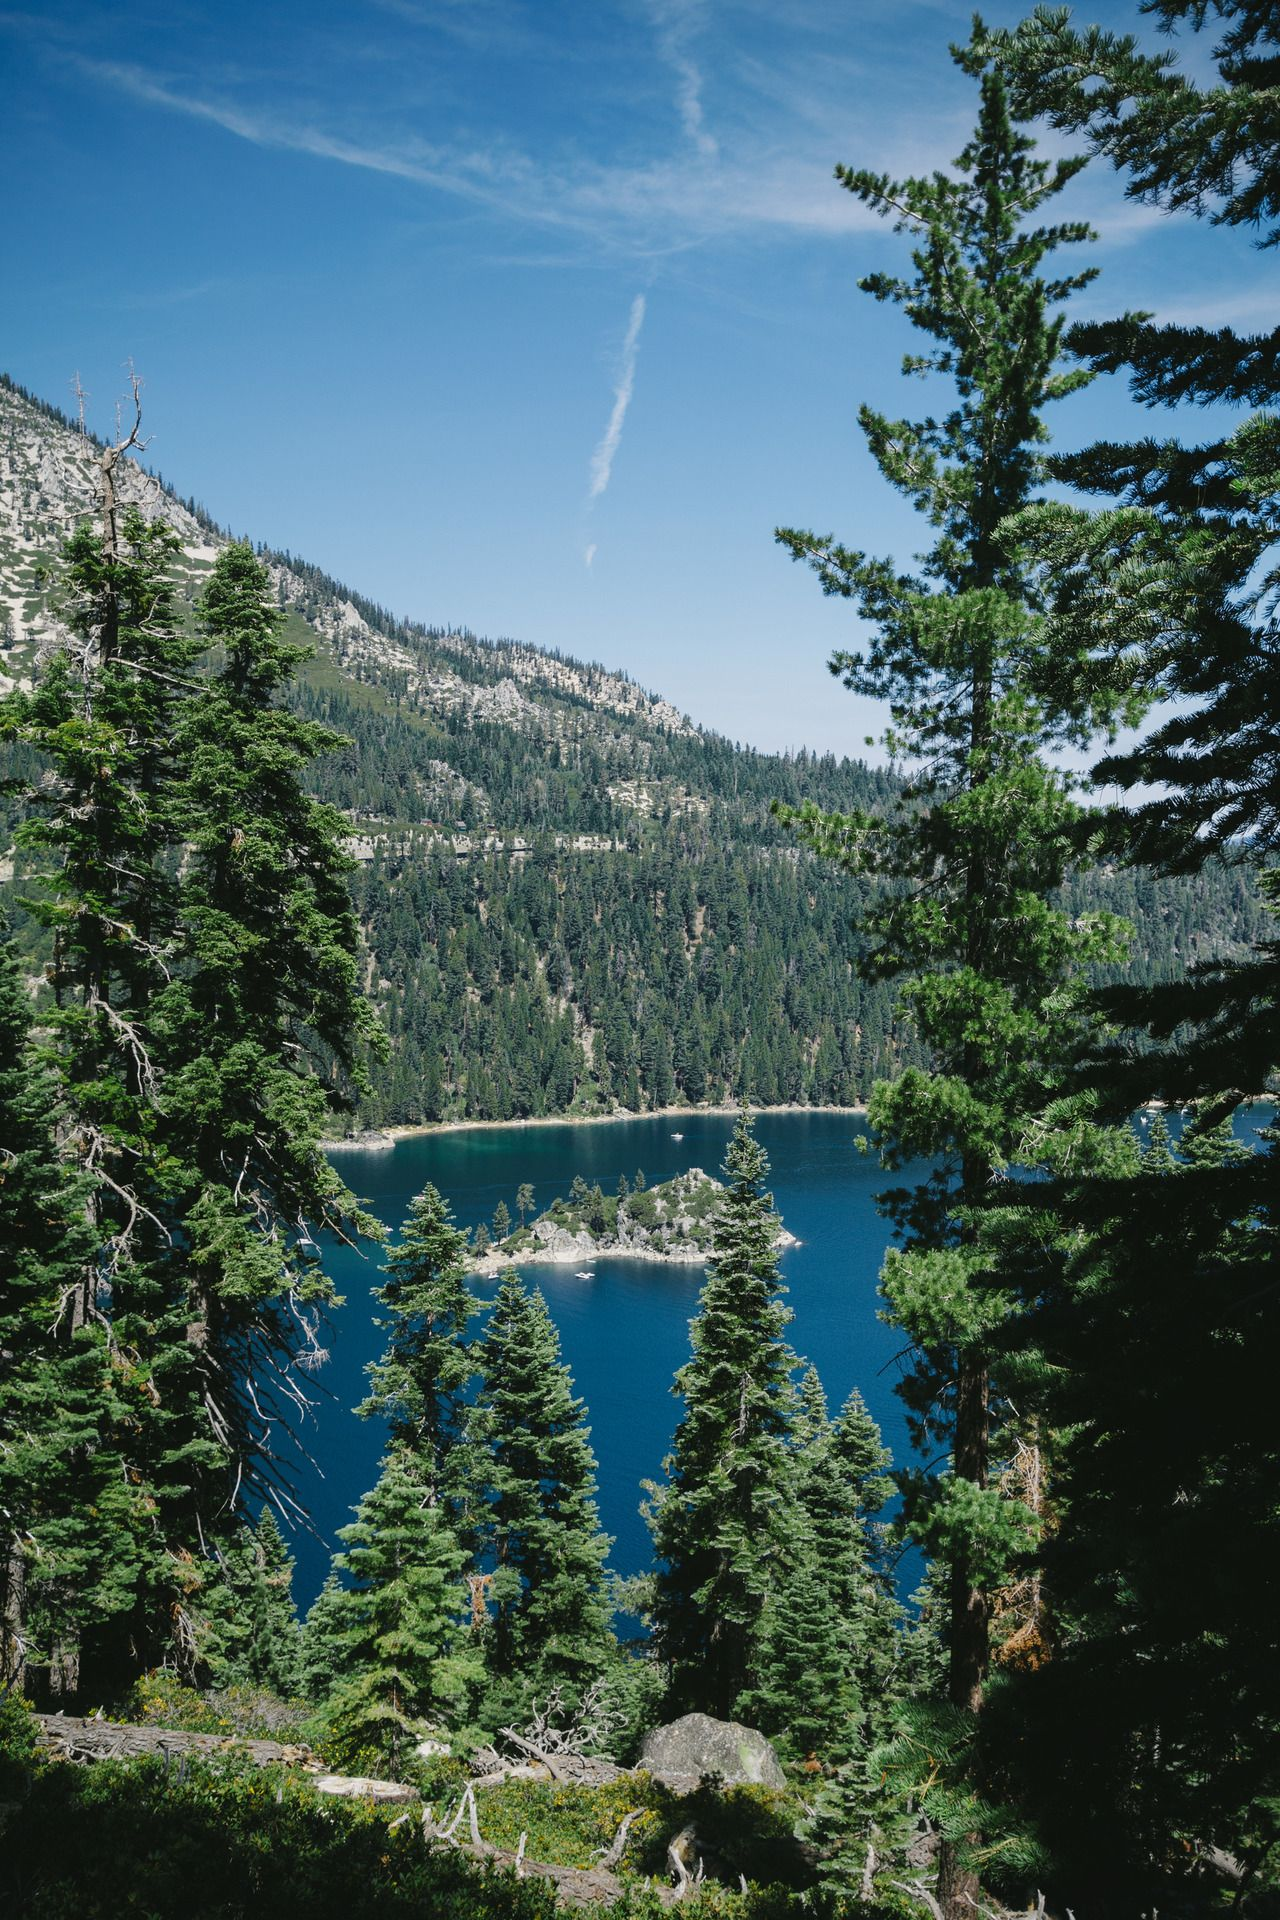 store nightly cleaning summer realty weekly tahoe minimum bolingers rent night park mg lodging in rates booking rental s lake fee for only occupancy bolinger stay cabins city cabin tax